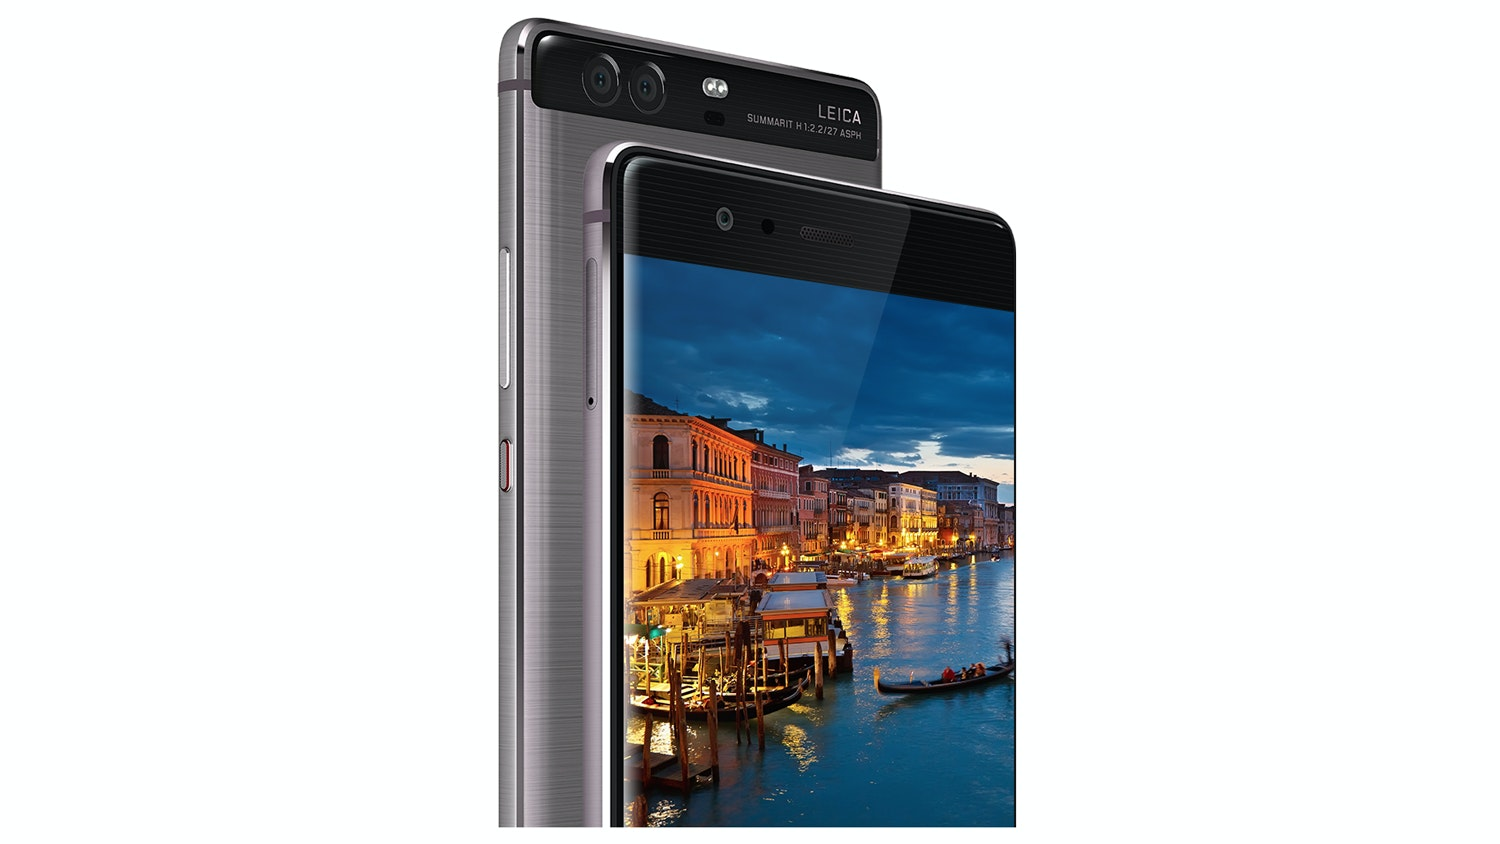 Image result for huawei p9 plus. Blending superior hardware and software with Leica dual lenses, the Huawei P9 Plus enables you to capture highest quality pictures without compromising on the handset's sleek and compact style.